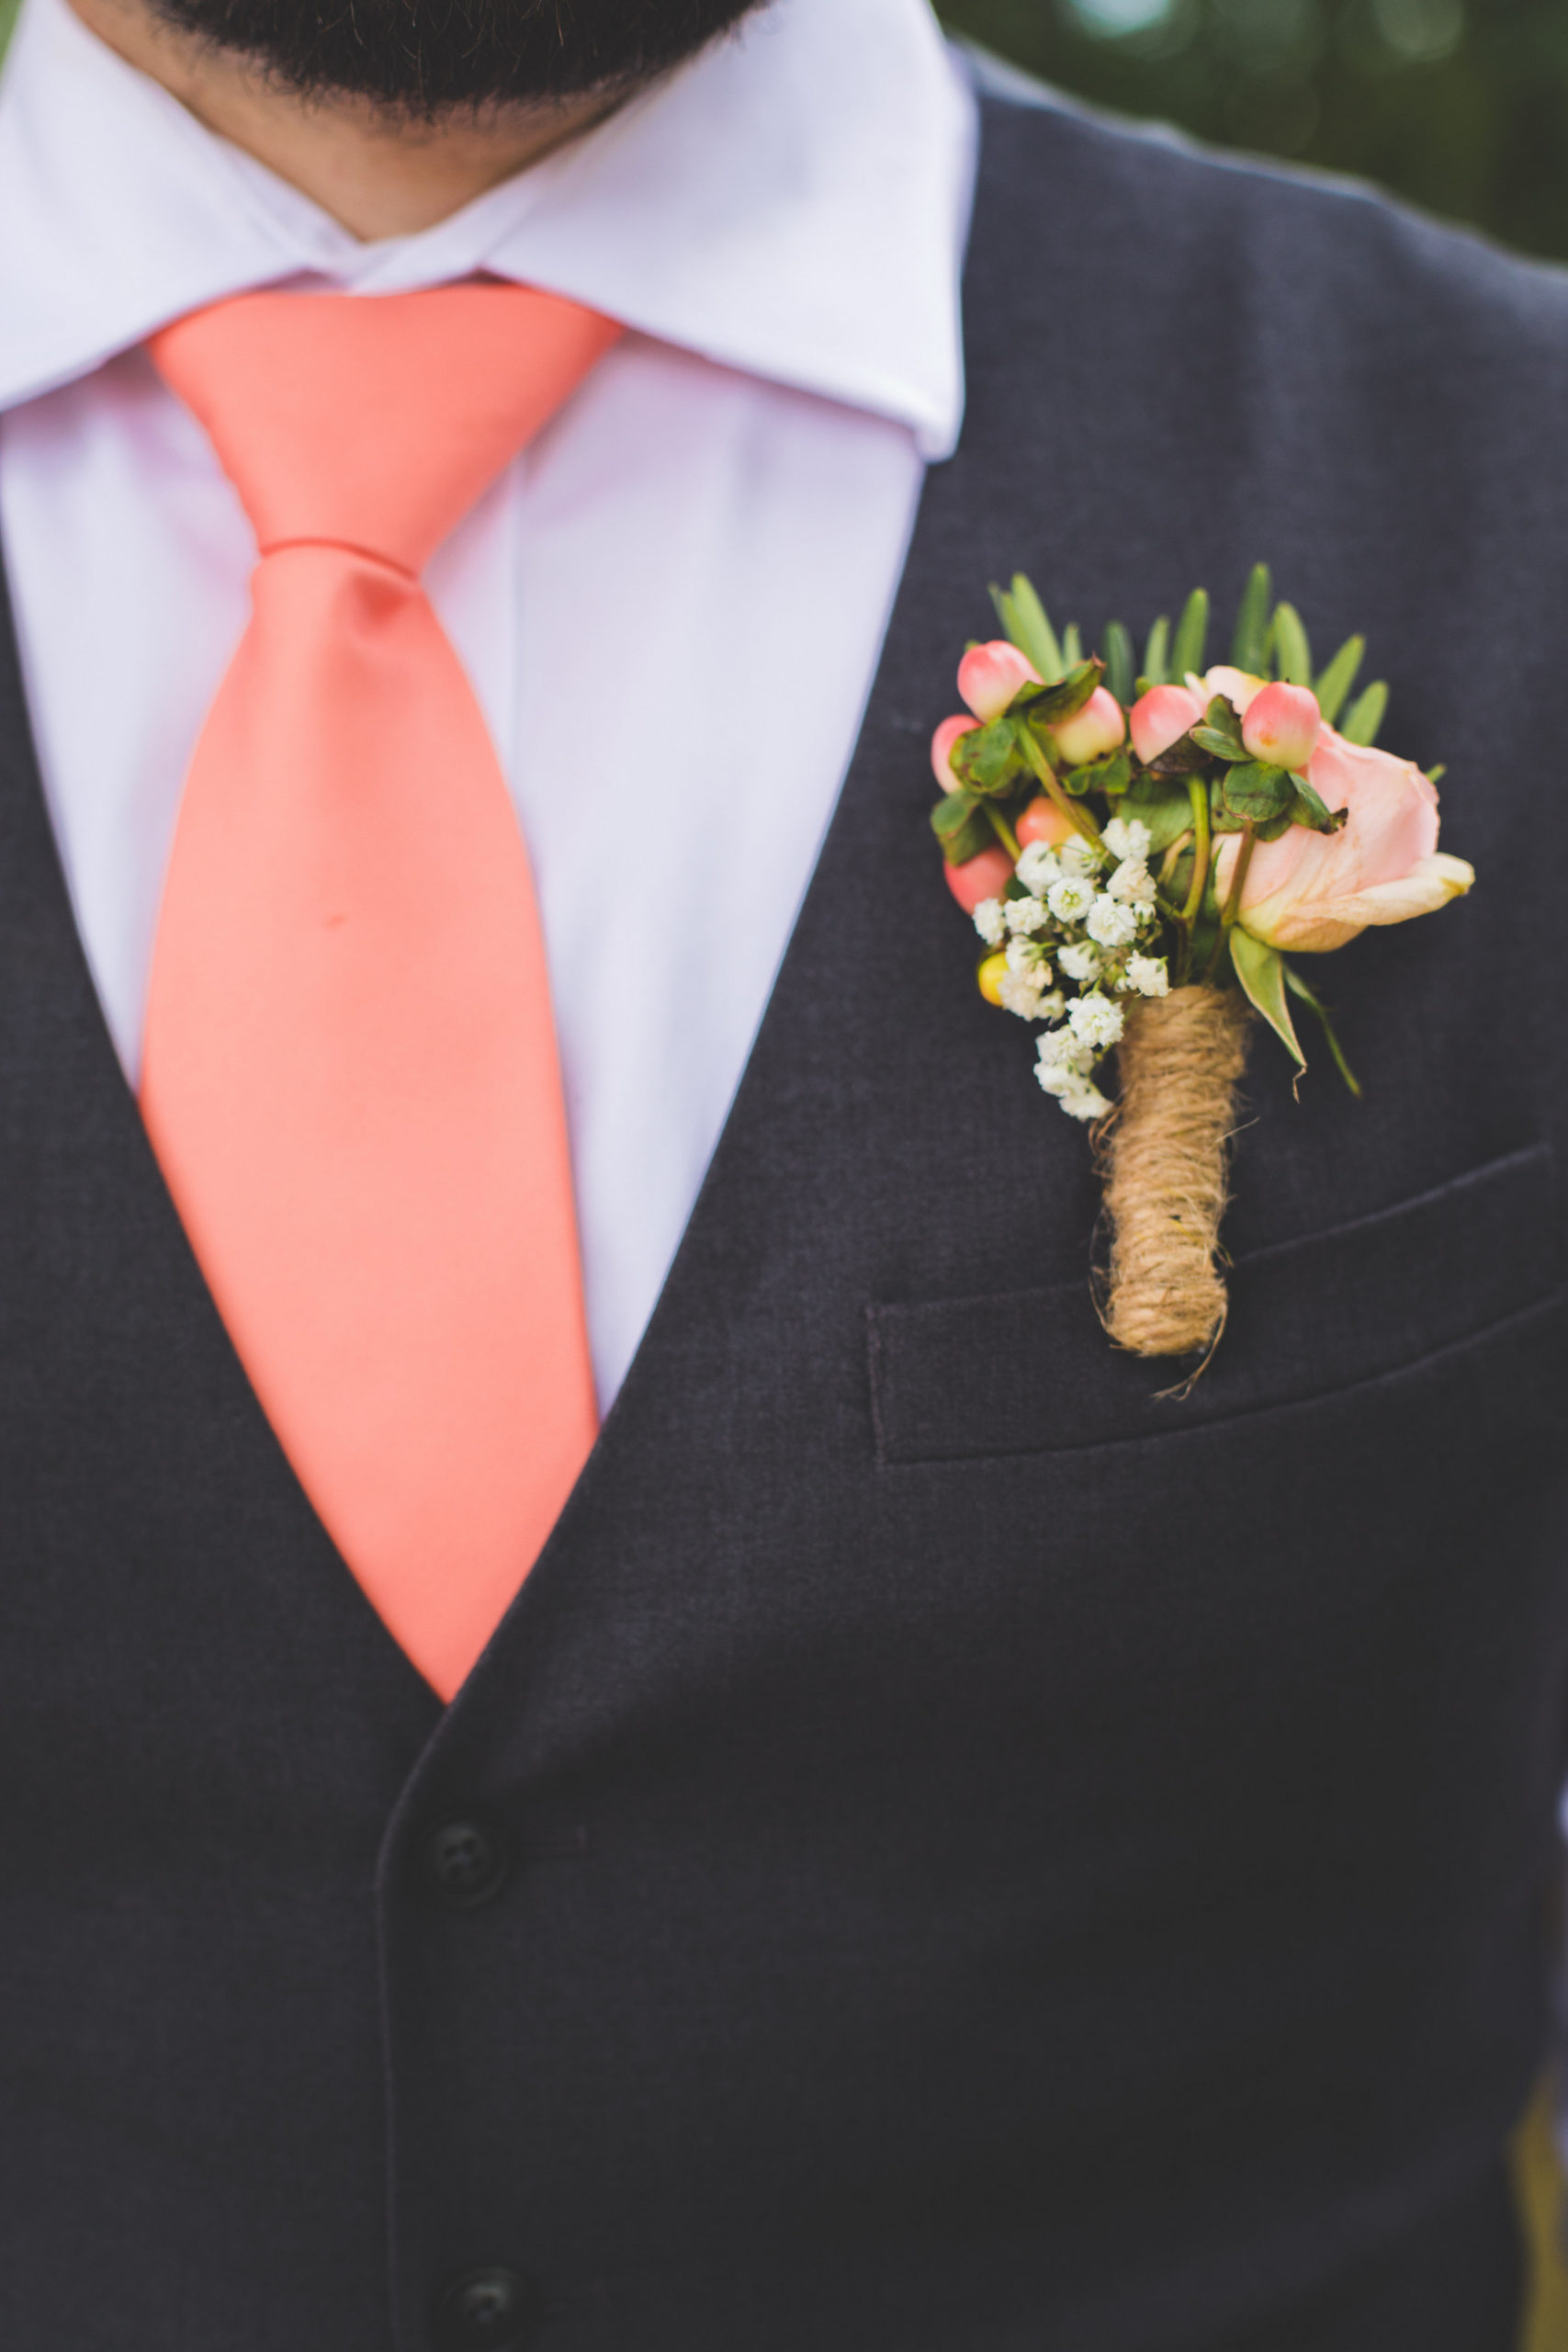 Coral and Peach tie accents the navy blue wedding vest. A pink- coral- peach boutonnière accompanies the coral tie.